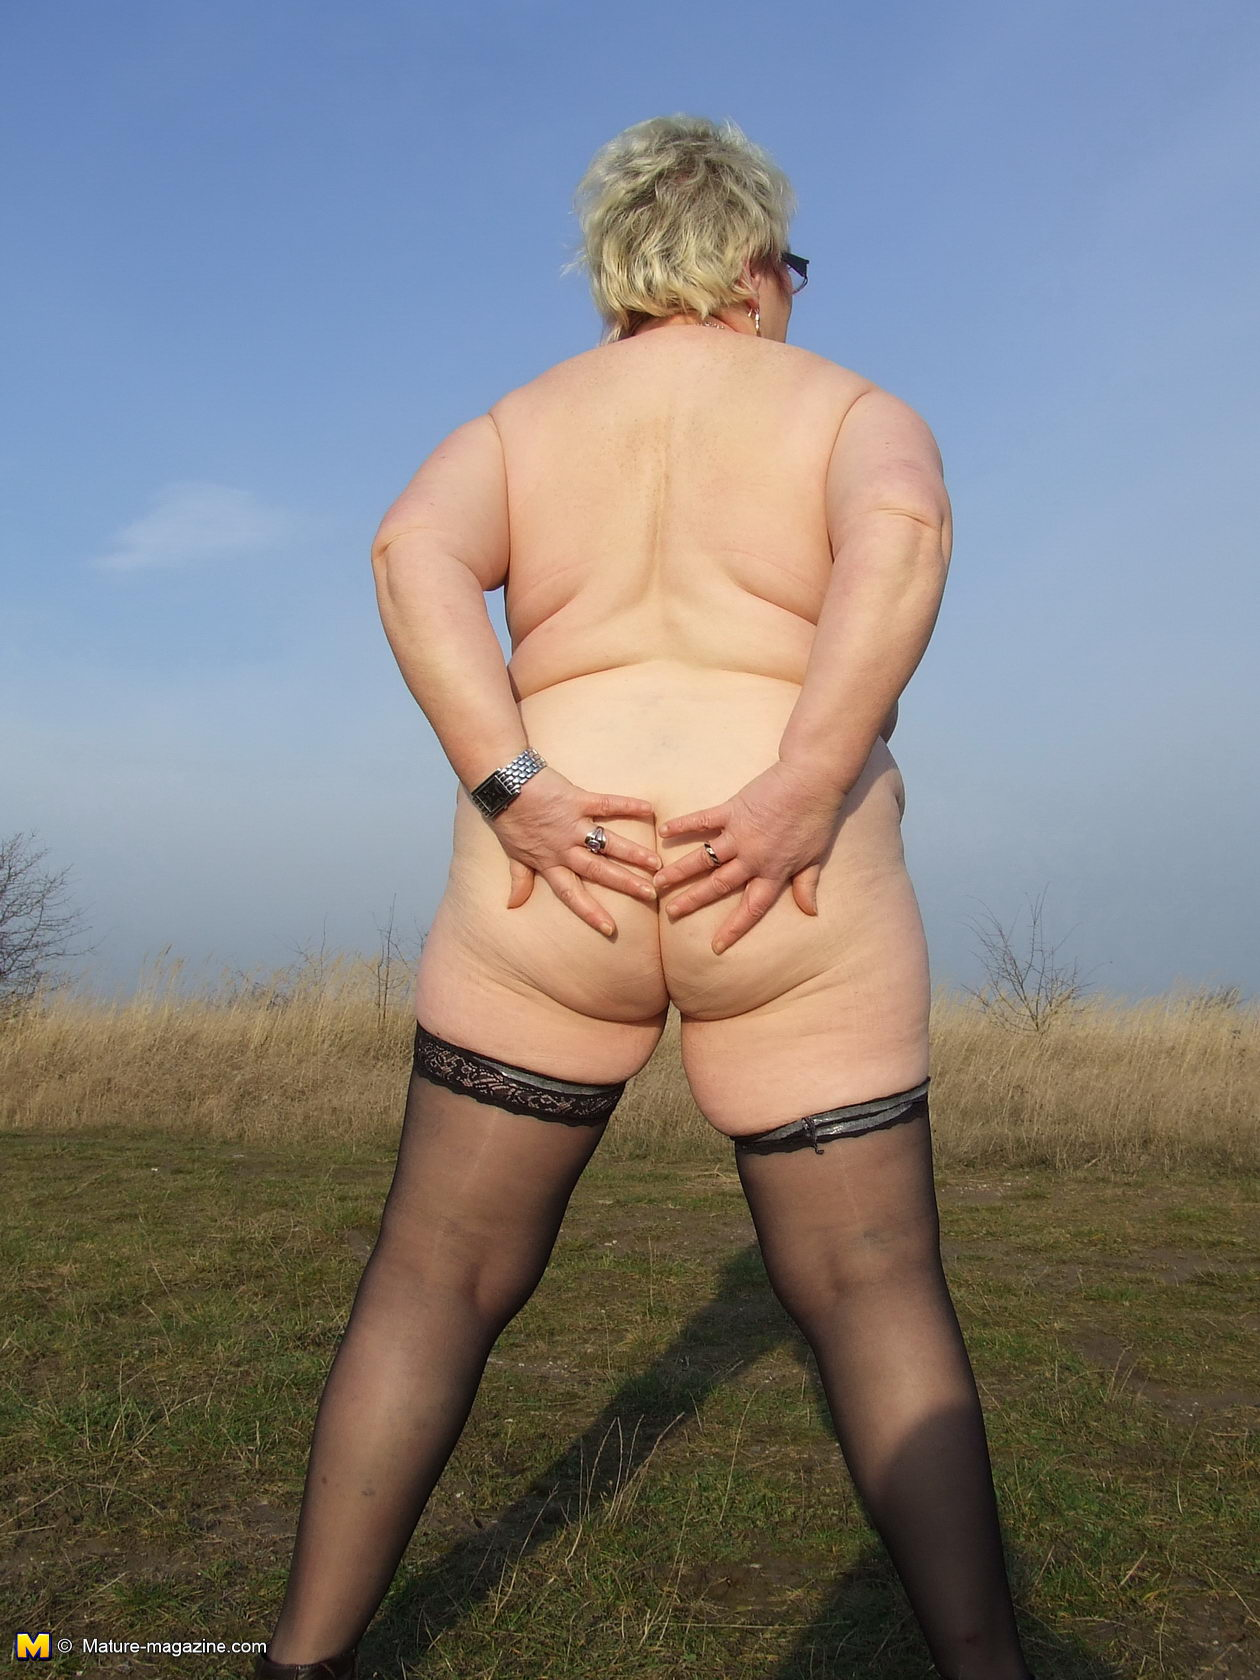 Mature amateur peeing outdoors